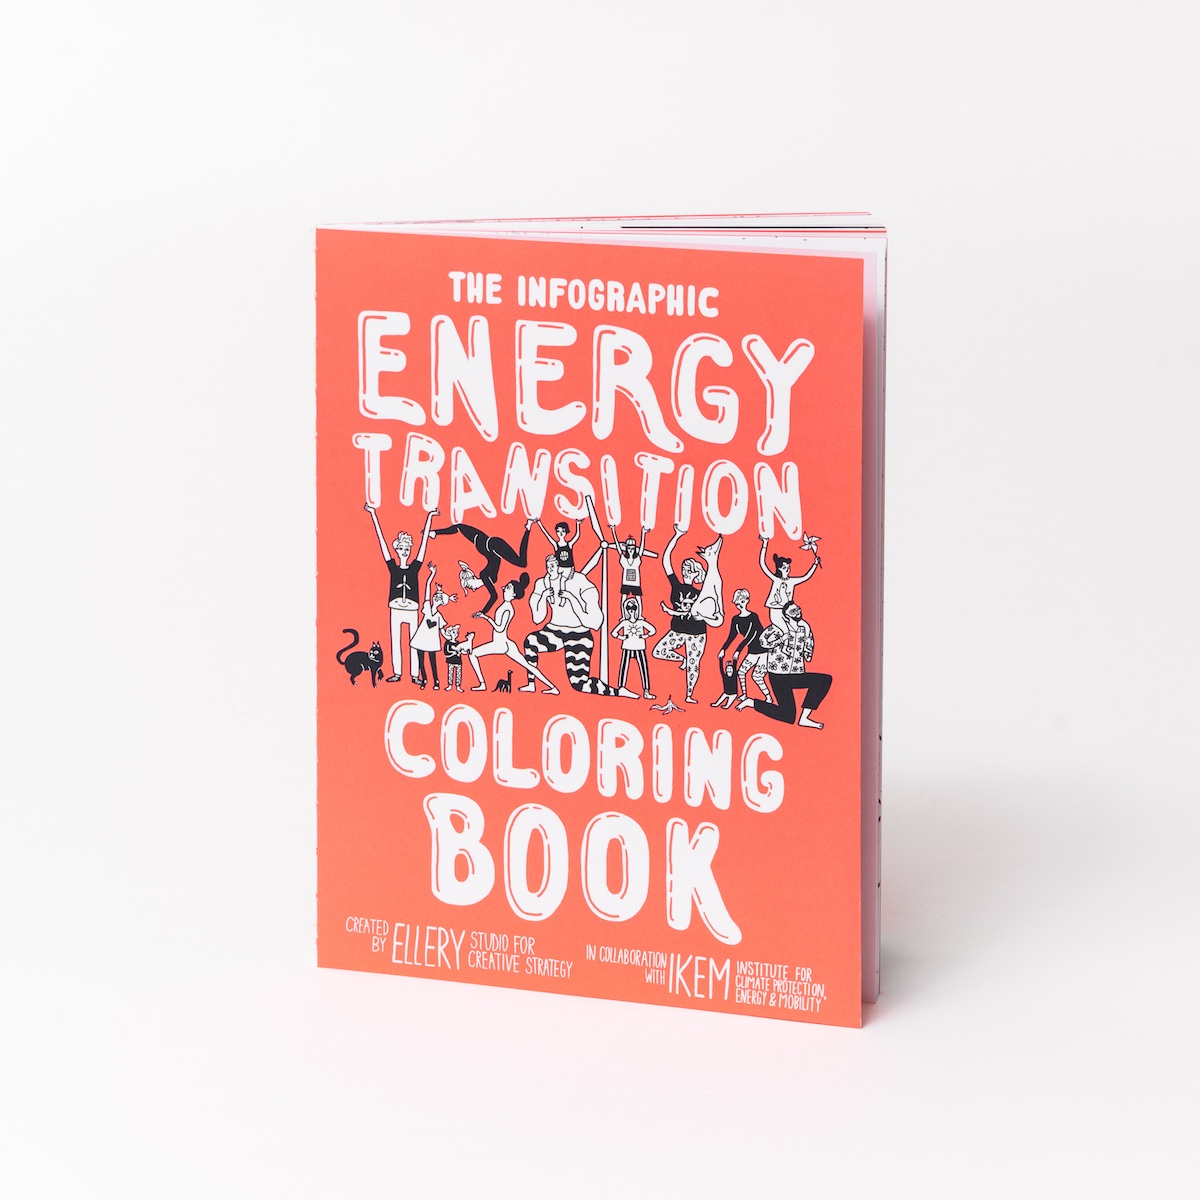 ElleryStudio-Infographic-Energy-Transition-Coloring-Book-3521_